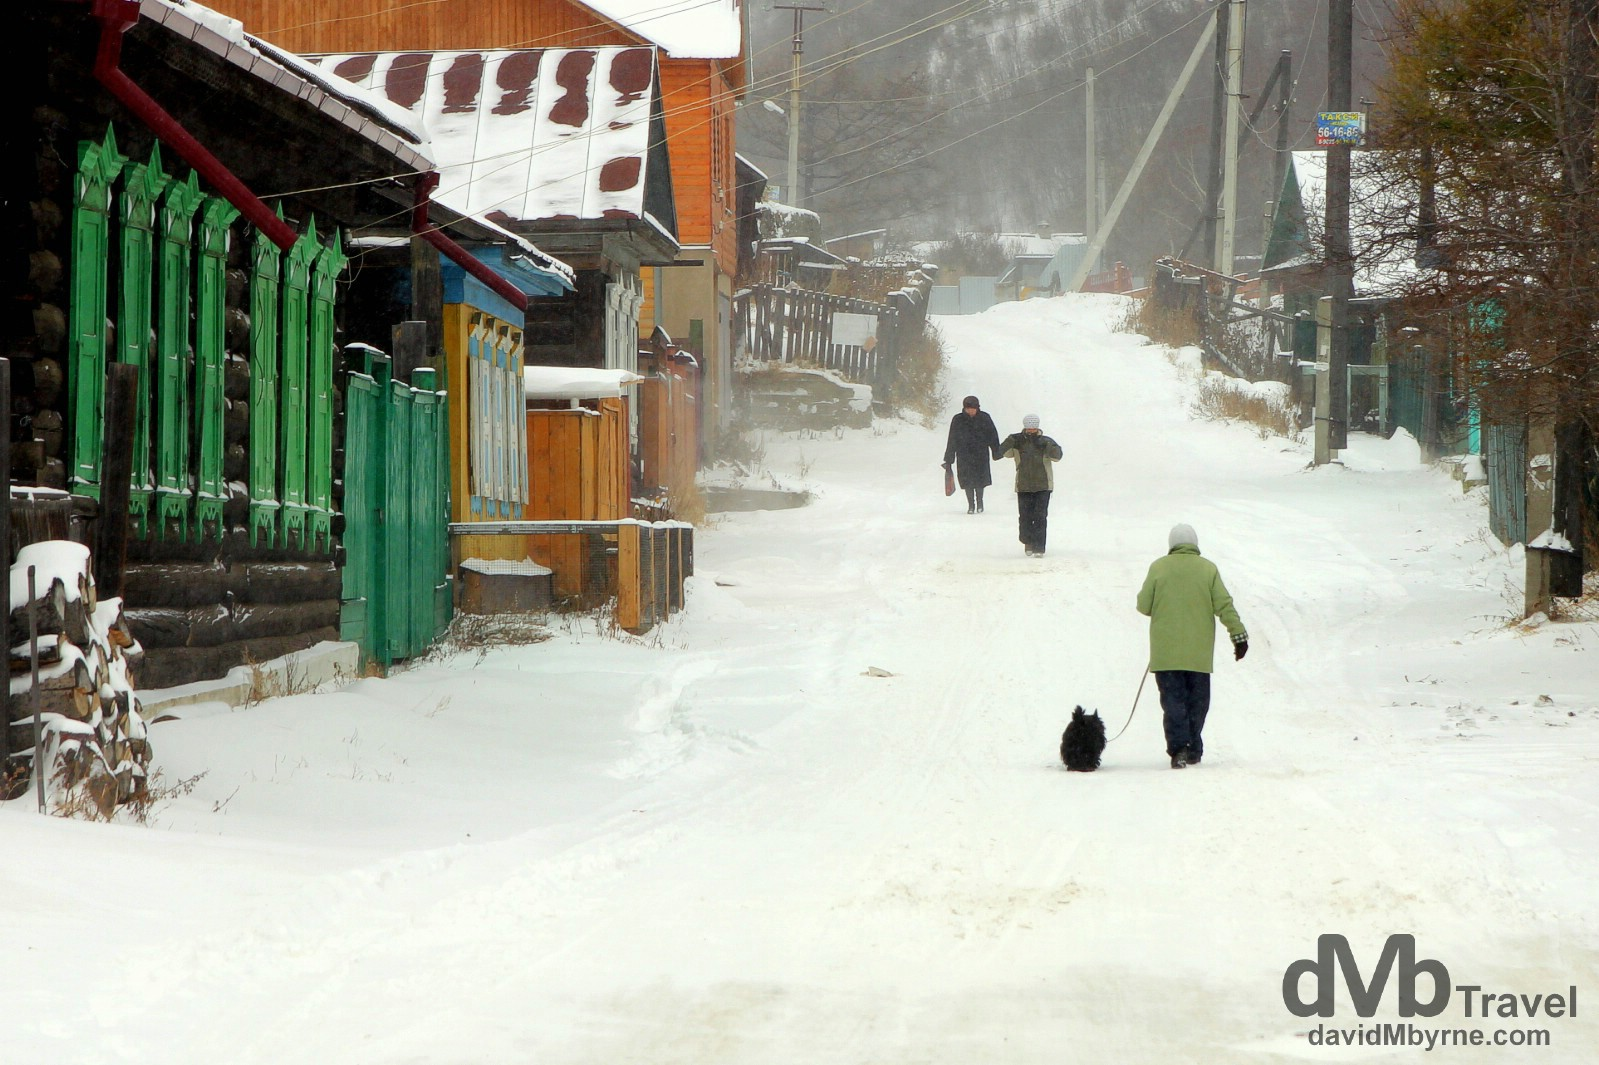 Walking in the snow in the village of Listvyanka on the shores of Lake Baikal, Irkutsk Oblat, Russia. November 9th 2012